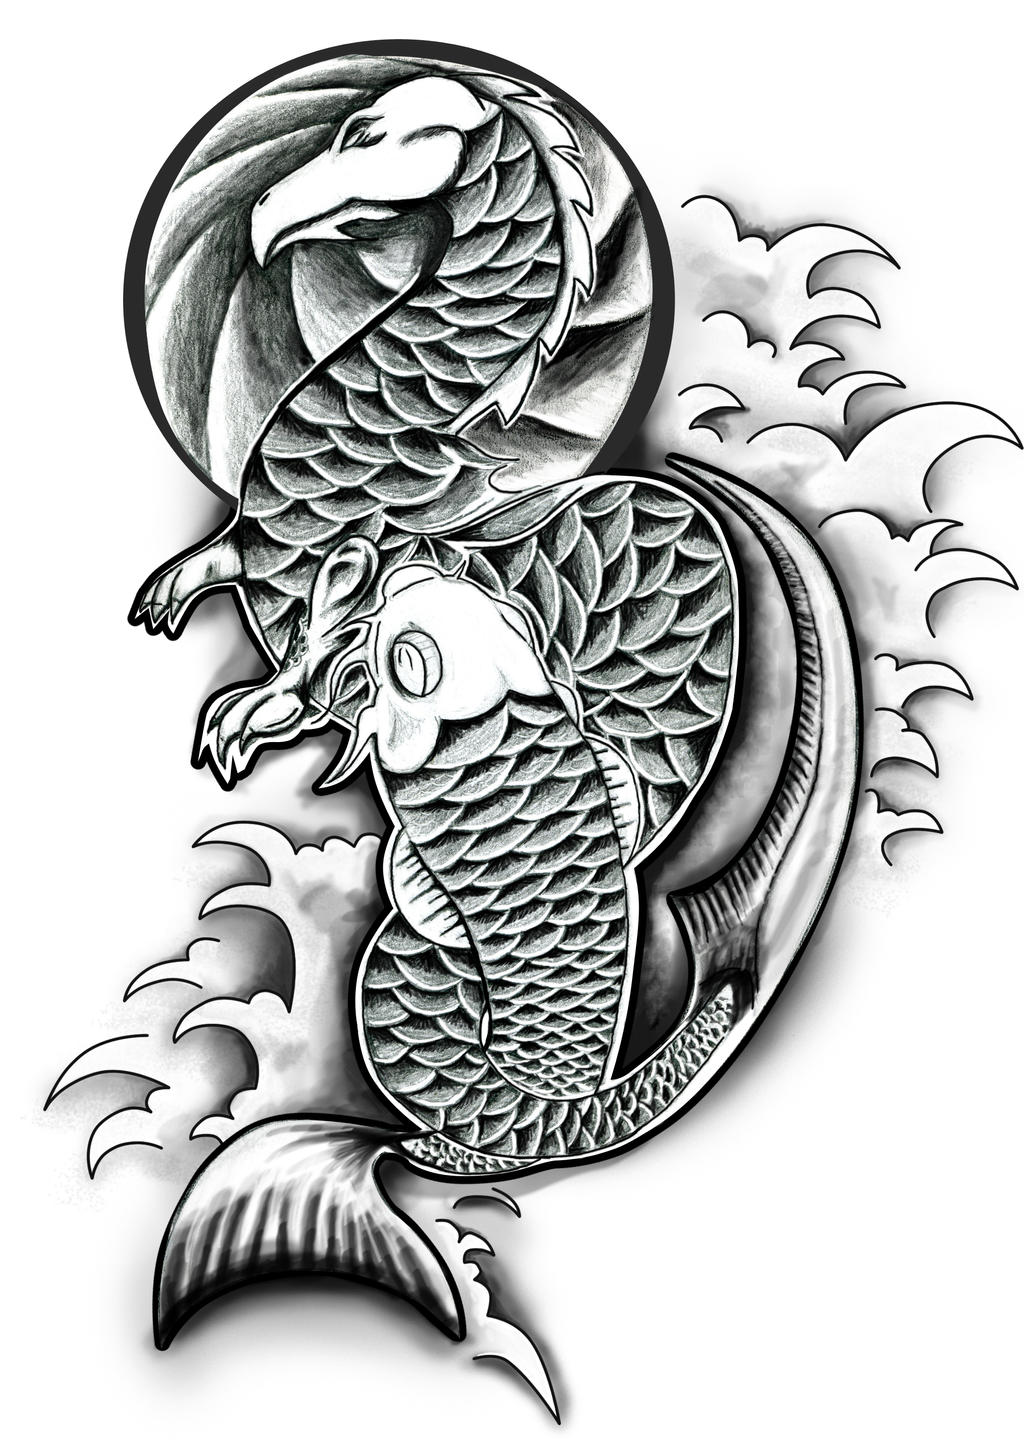 Dragon and koi by danwhitedesigns on deviantart for Black dragon koi